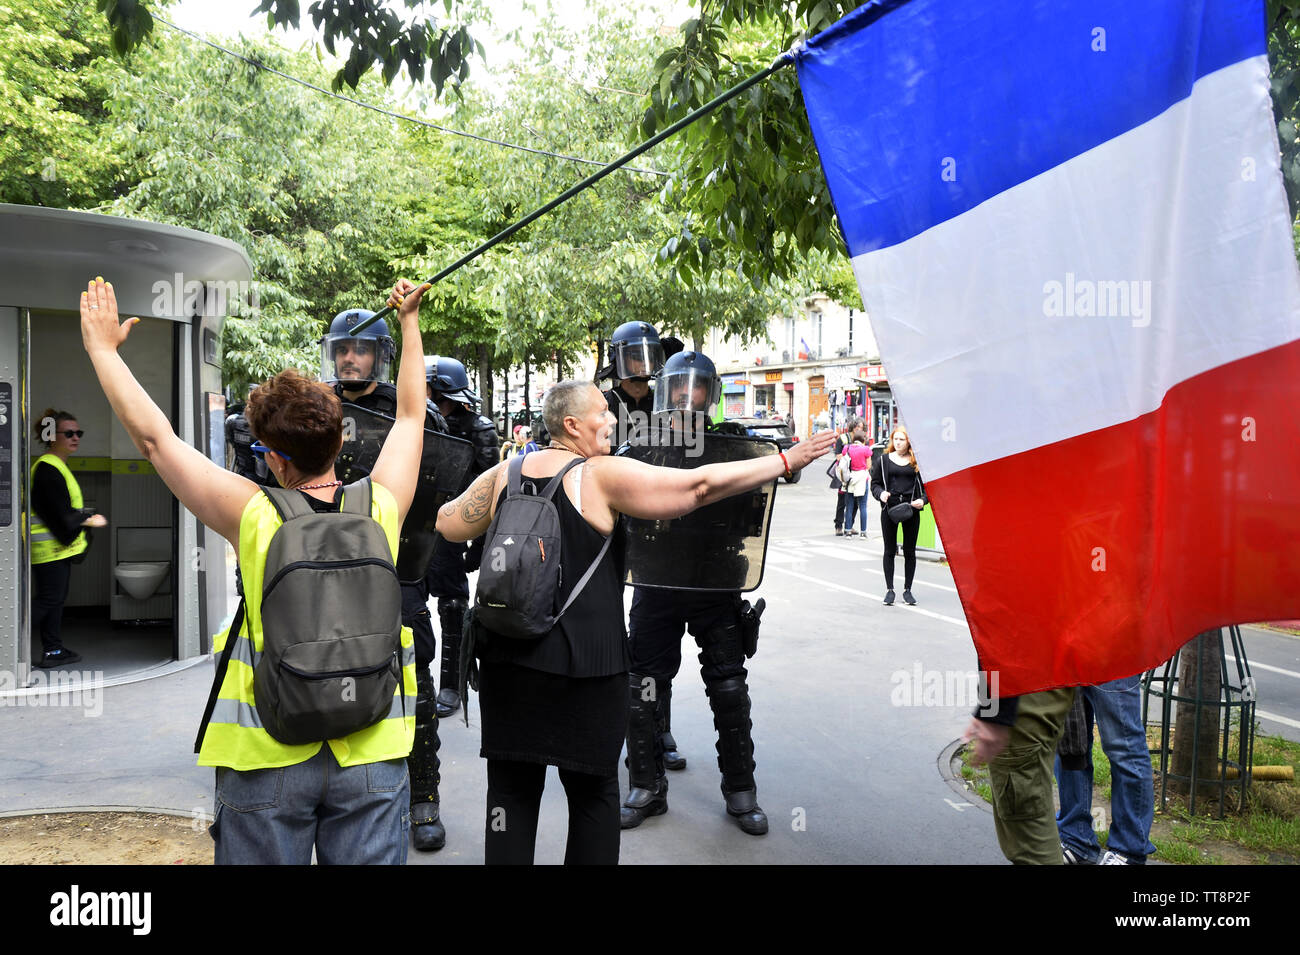 31th saturday of protest for the yellow vests - Paris - France - Stock Image